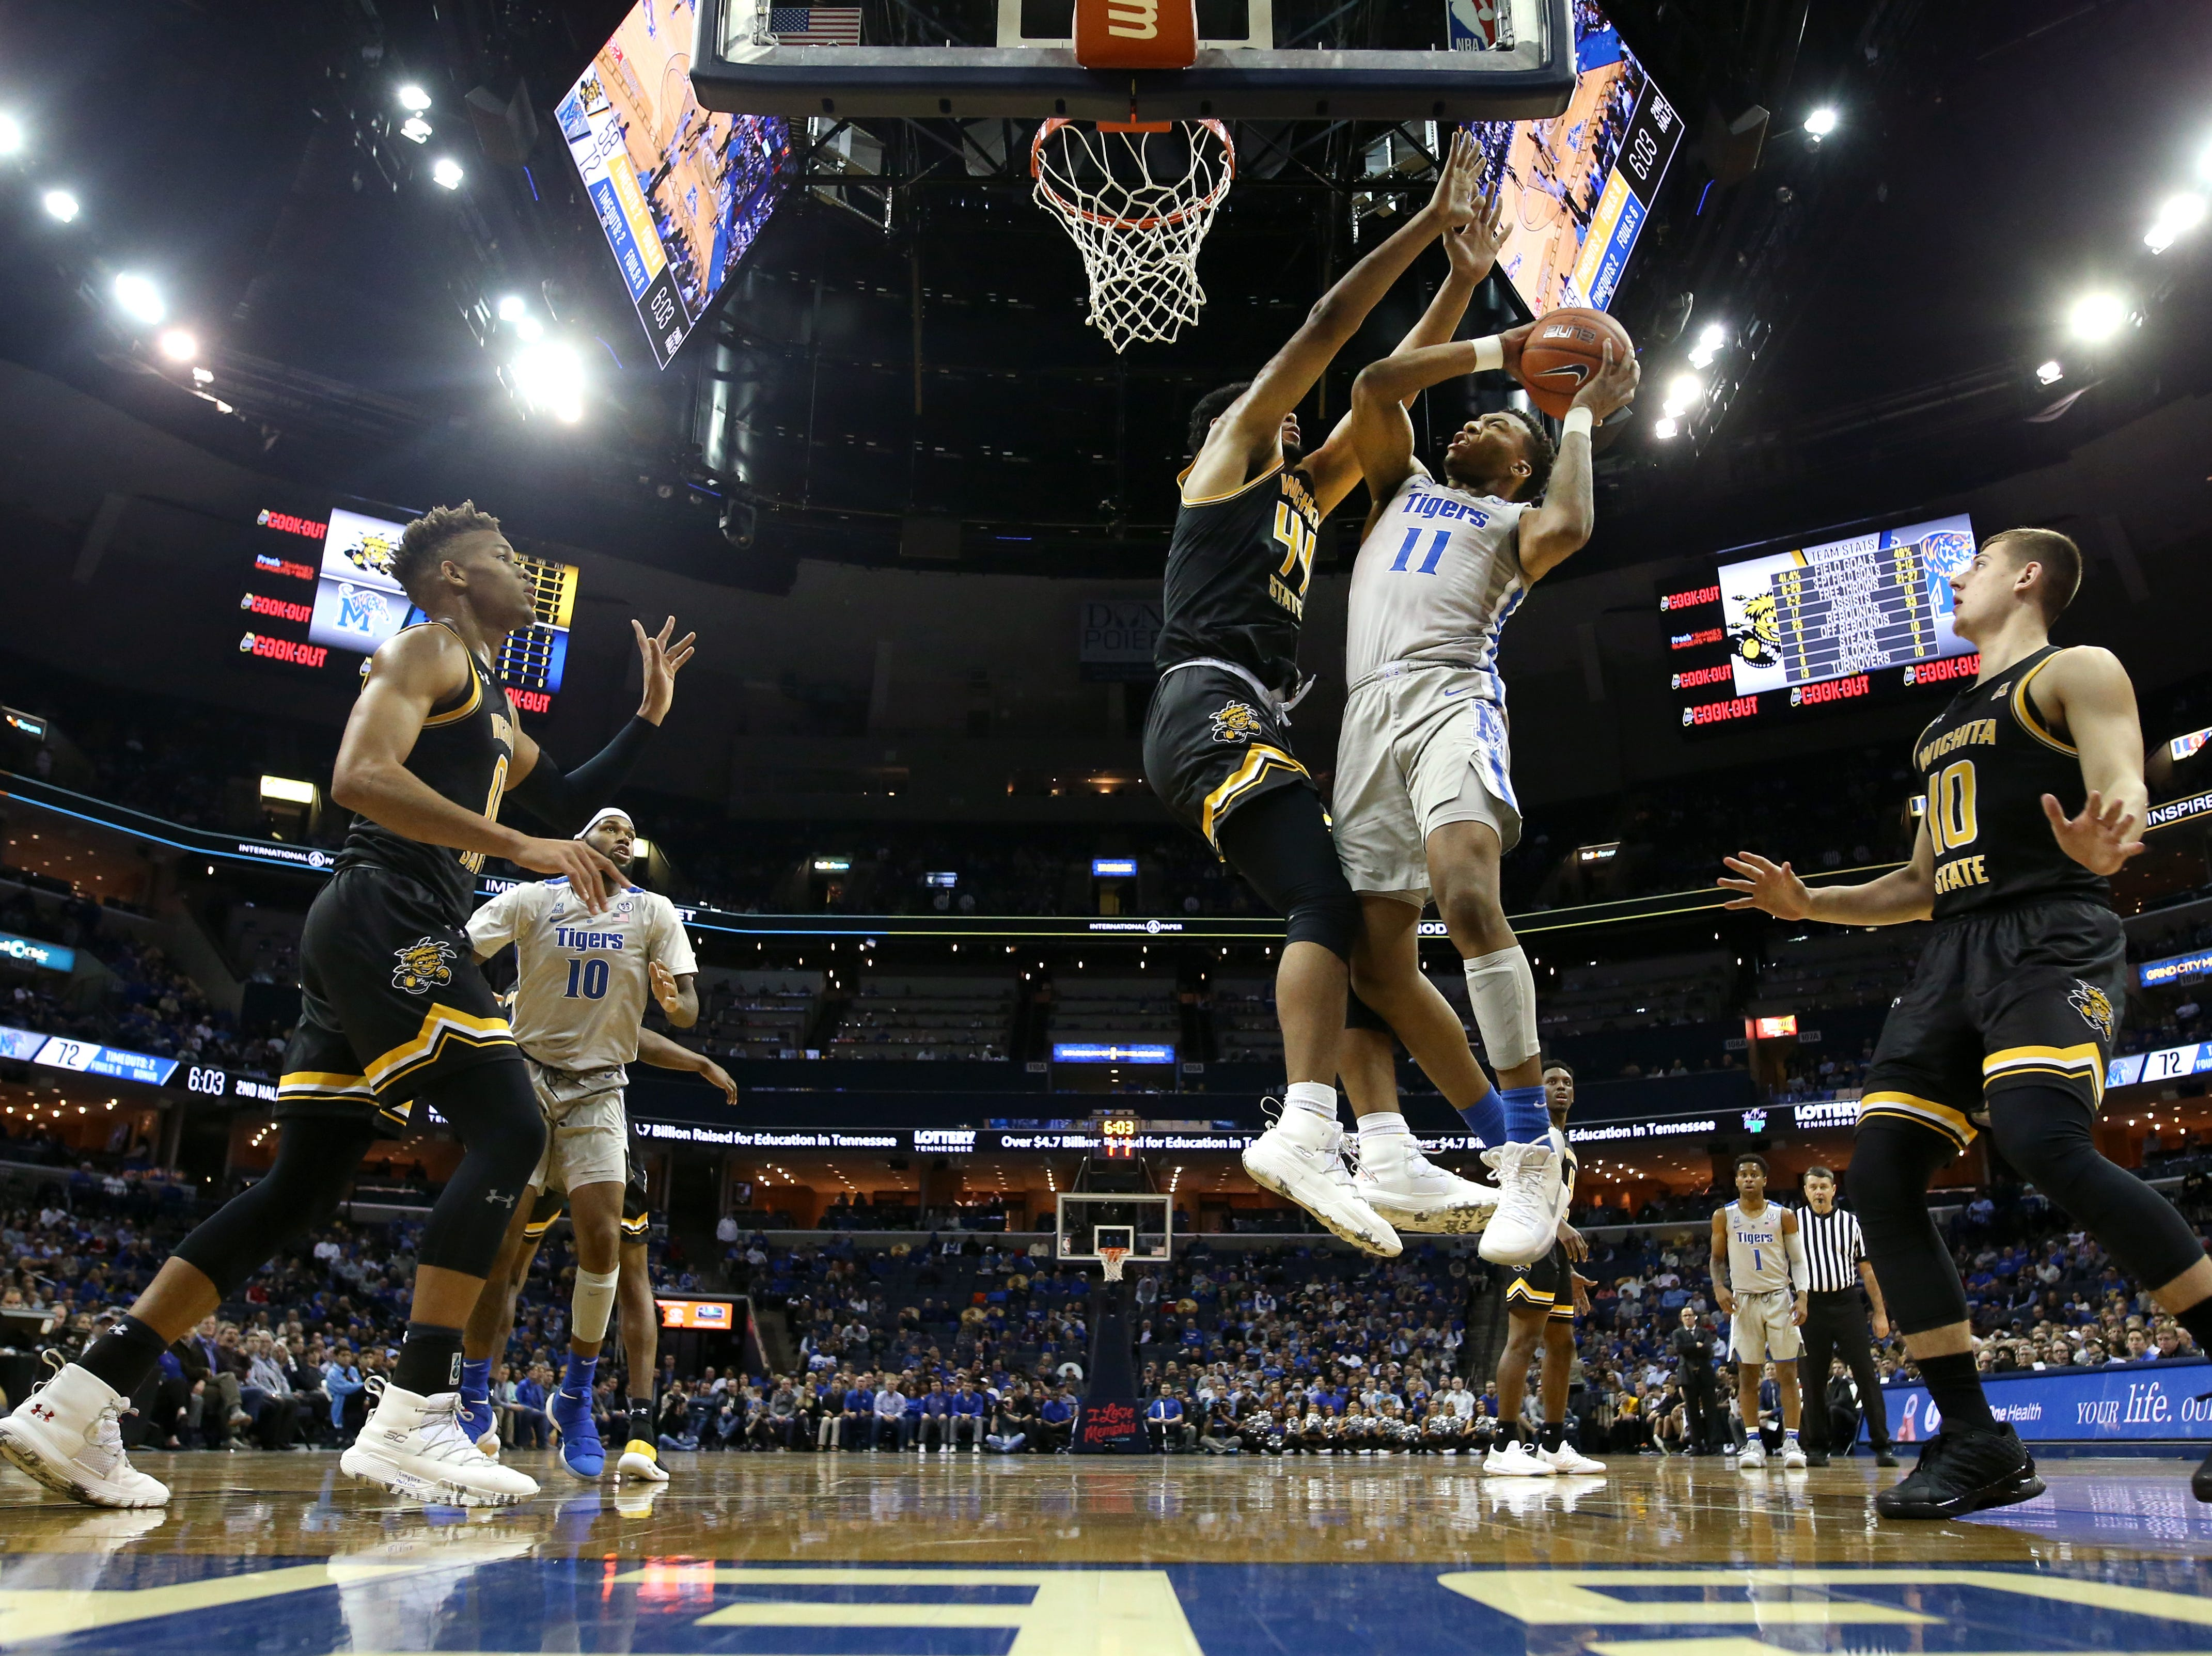 Memphis Tigers guard Antwann Jones shoots the ball over Wichita State Shockers forward Isaiah Poor Bear-Chandler during their game at the FedExForum on Thursday, Jan. 3, 2019.